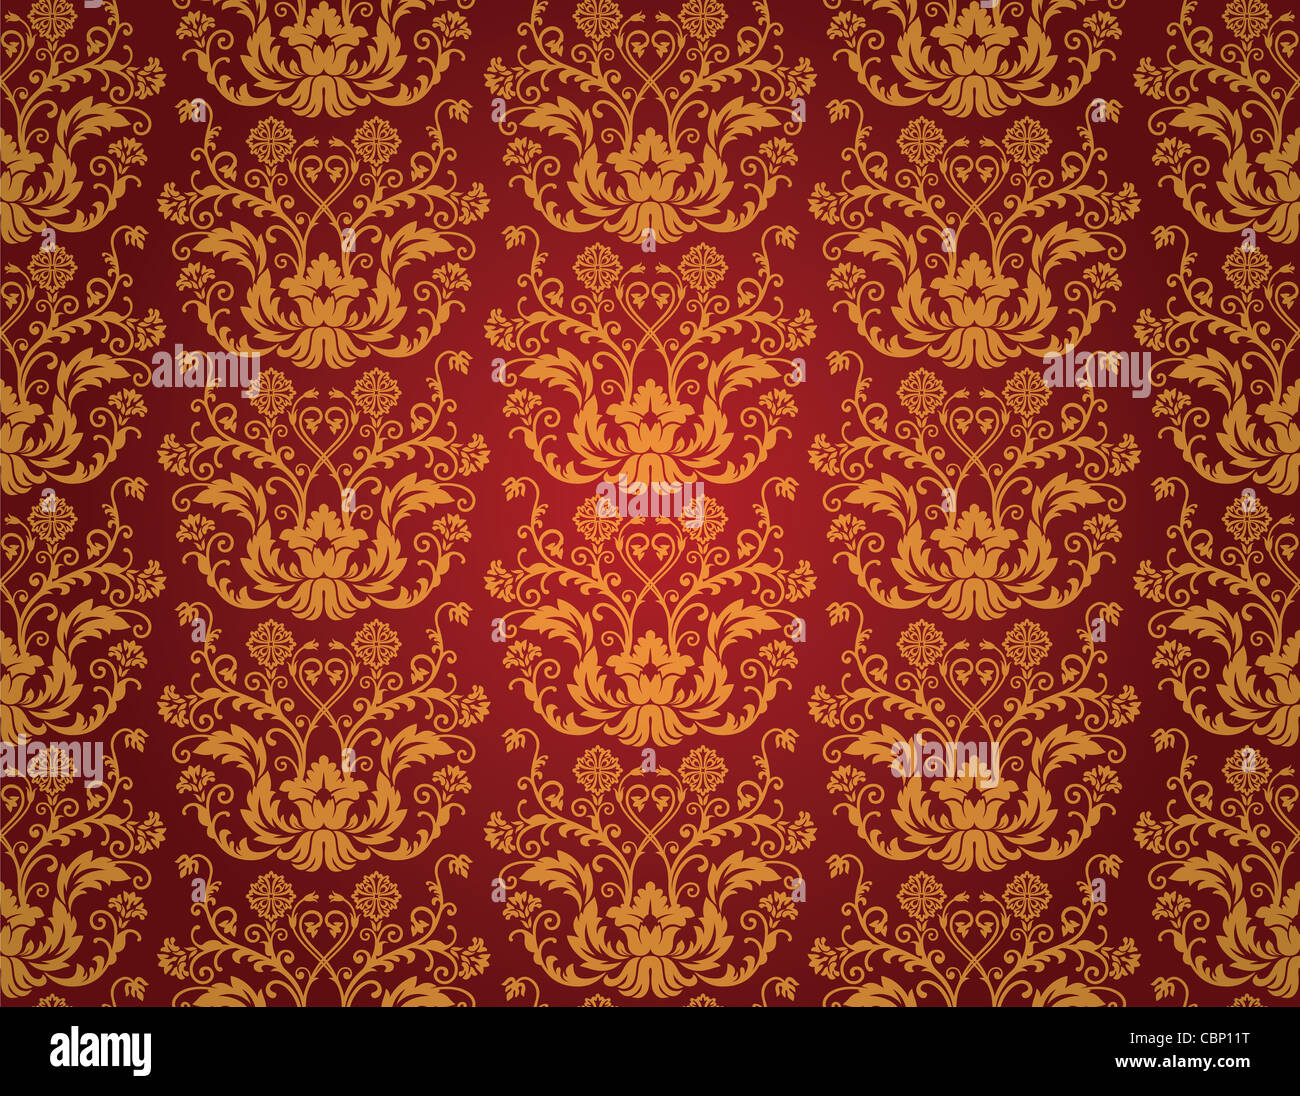 Seamless Red And Gold Floral Vintage Wallpaper Pattern